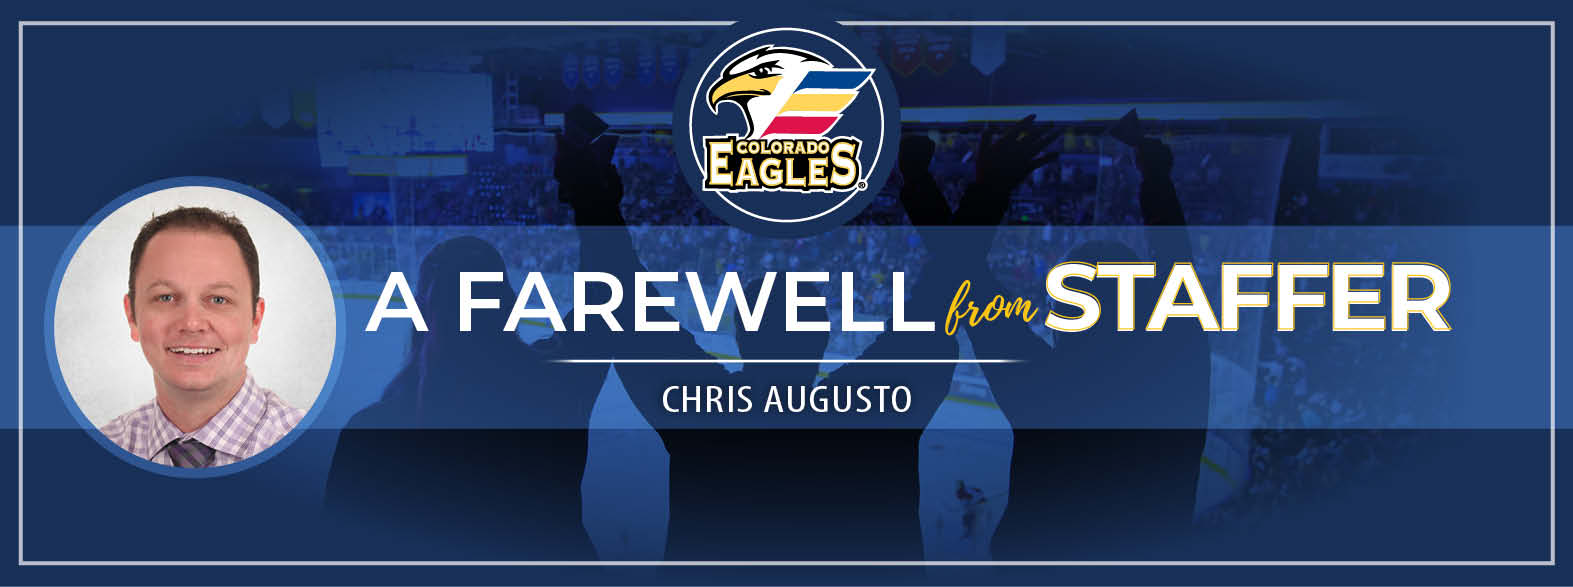 Eagles Wish Augusto Best of Luck in New Career